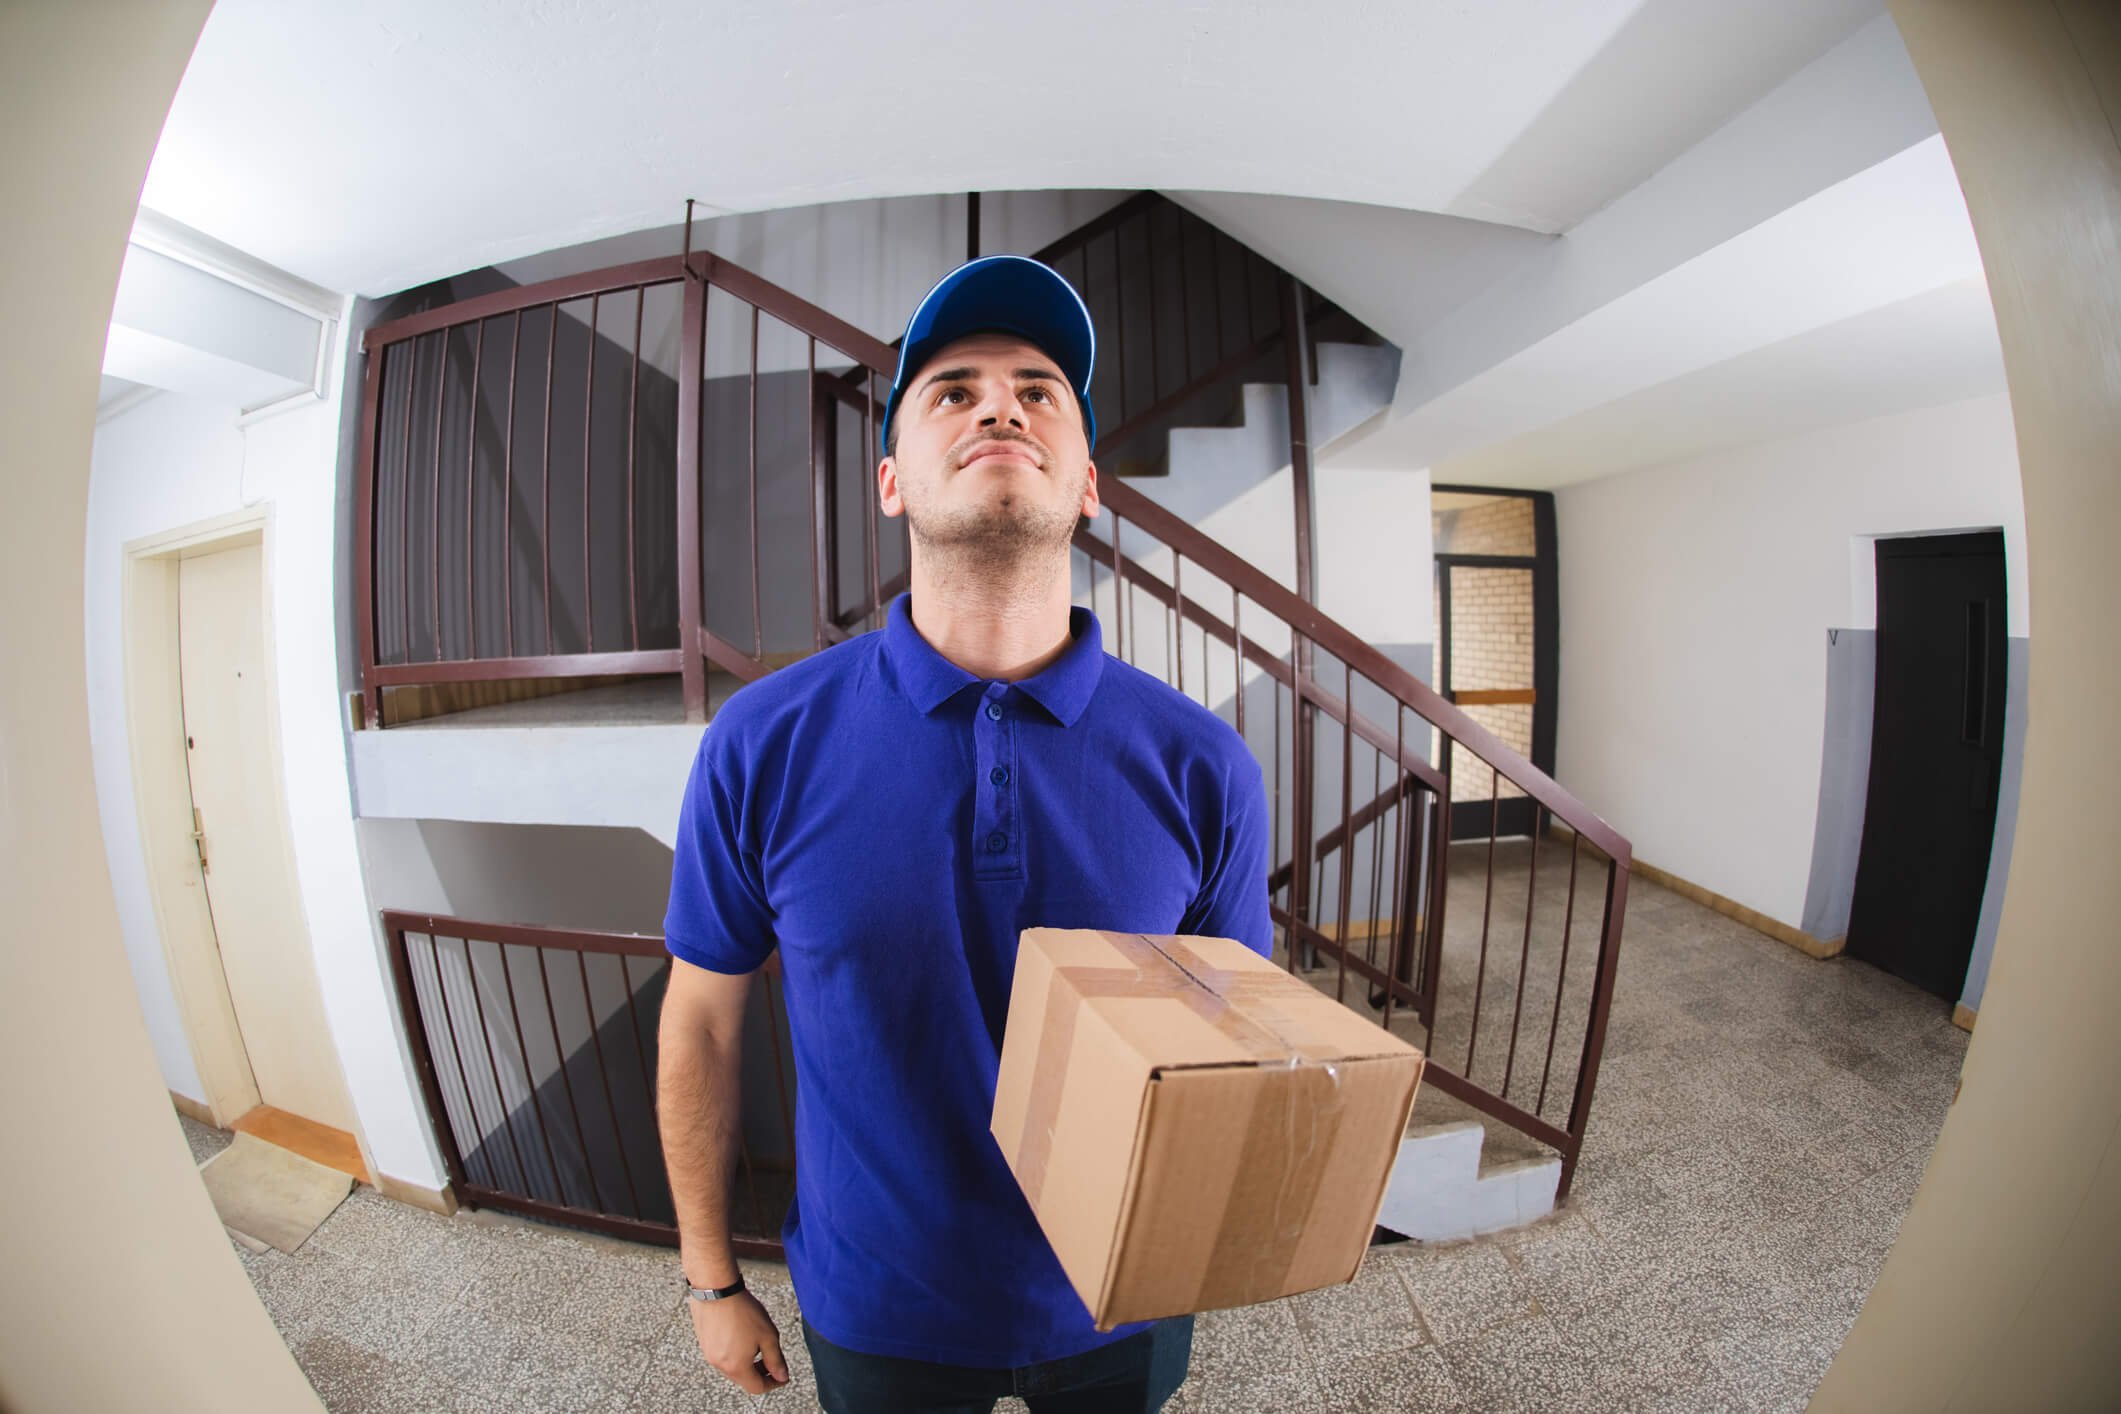 Man in a blue shirt seen through peephole standing holding package